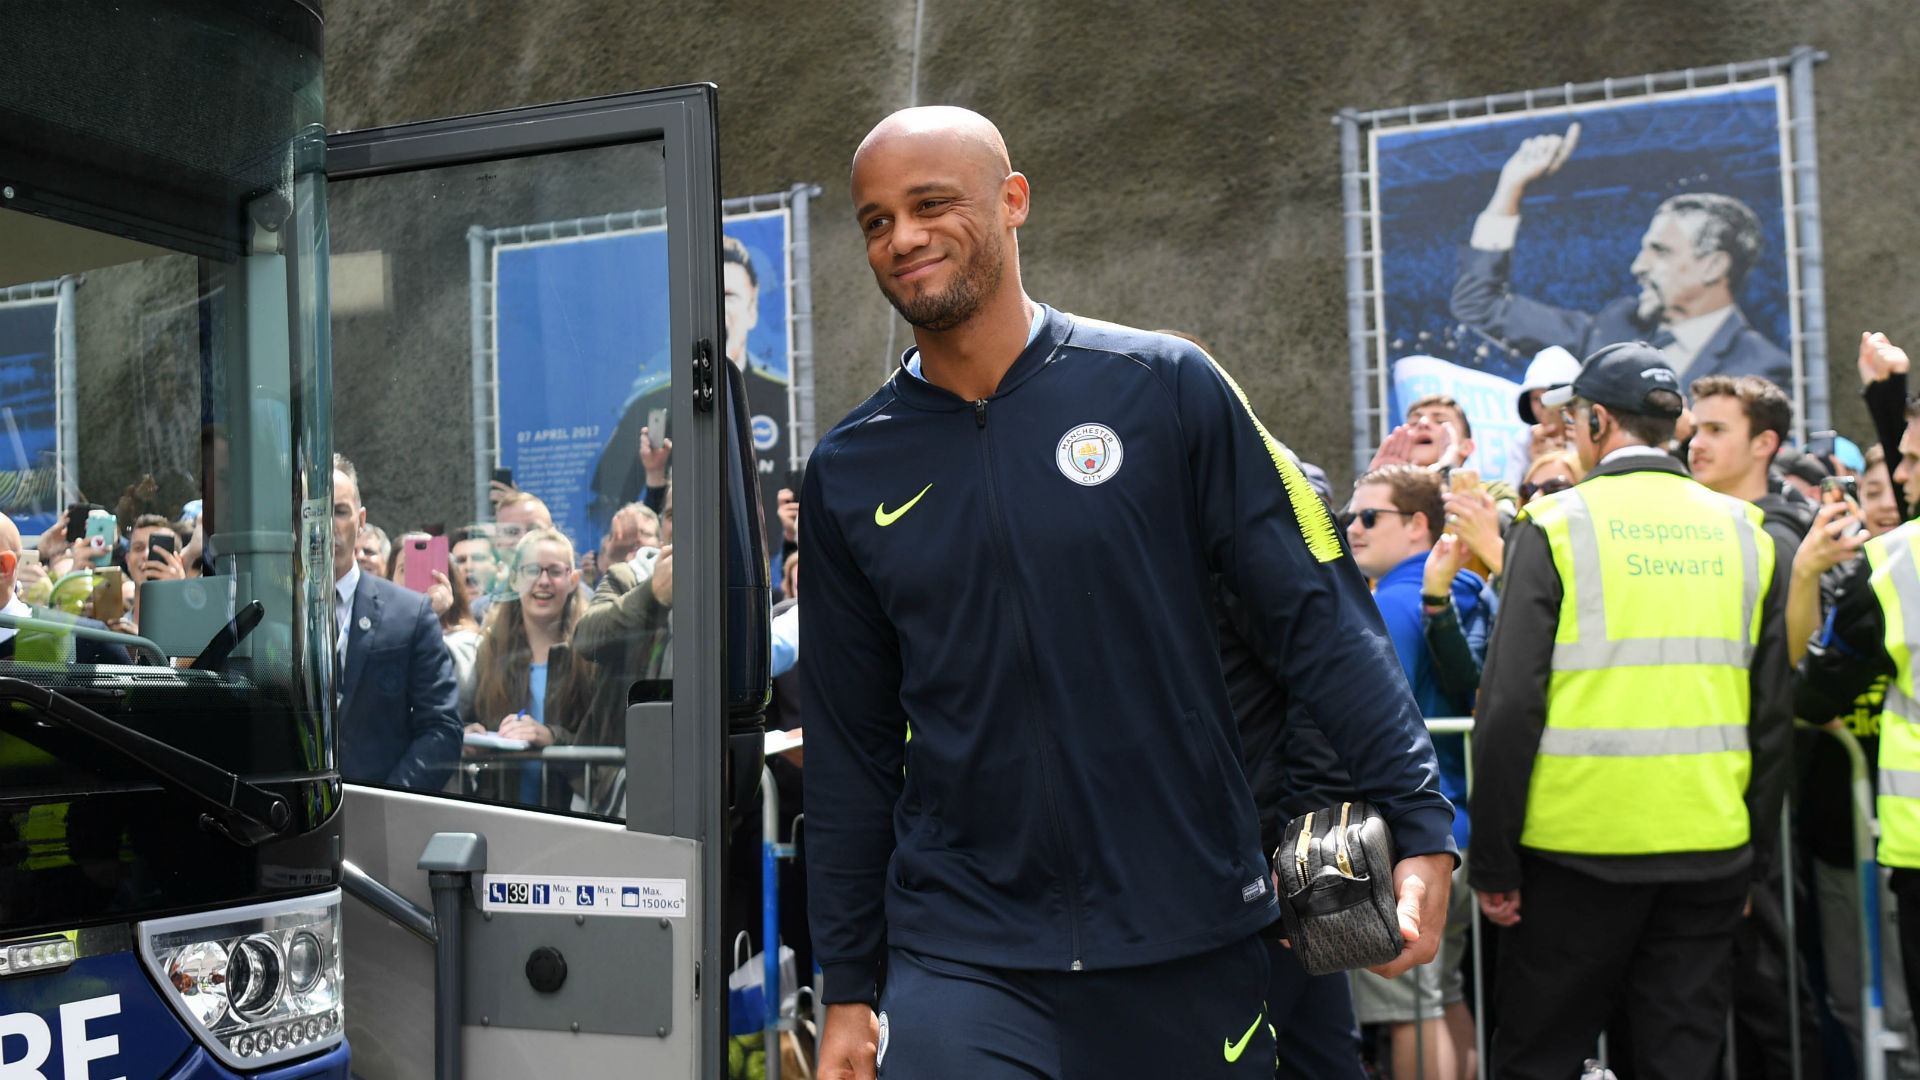 Typical of me, right? - Kompany to miss testimonial with injury